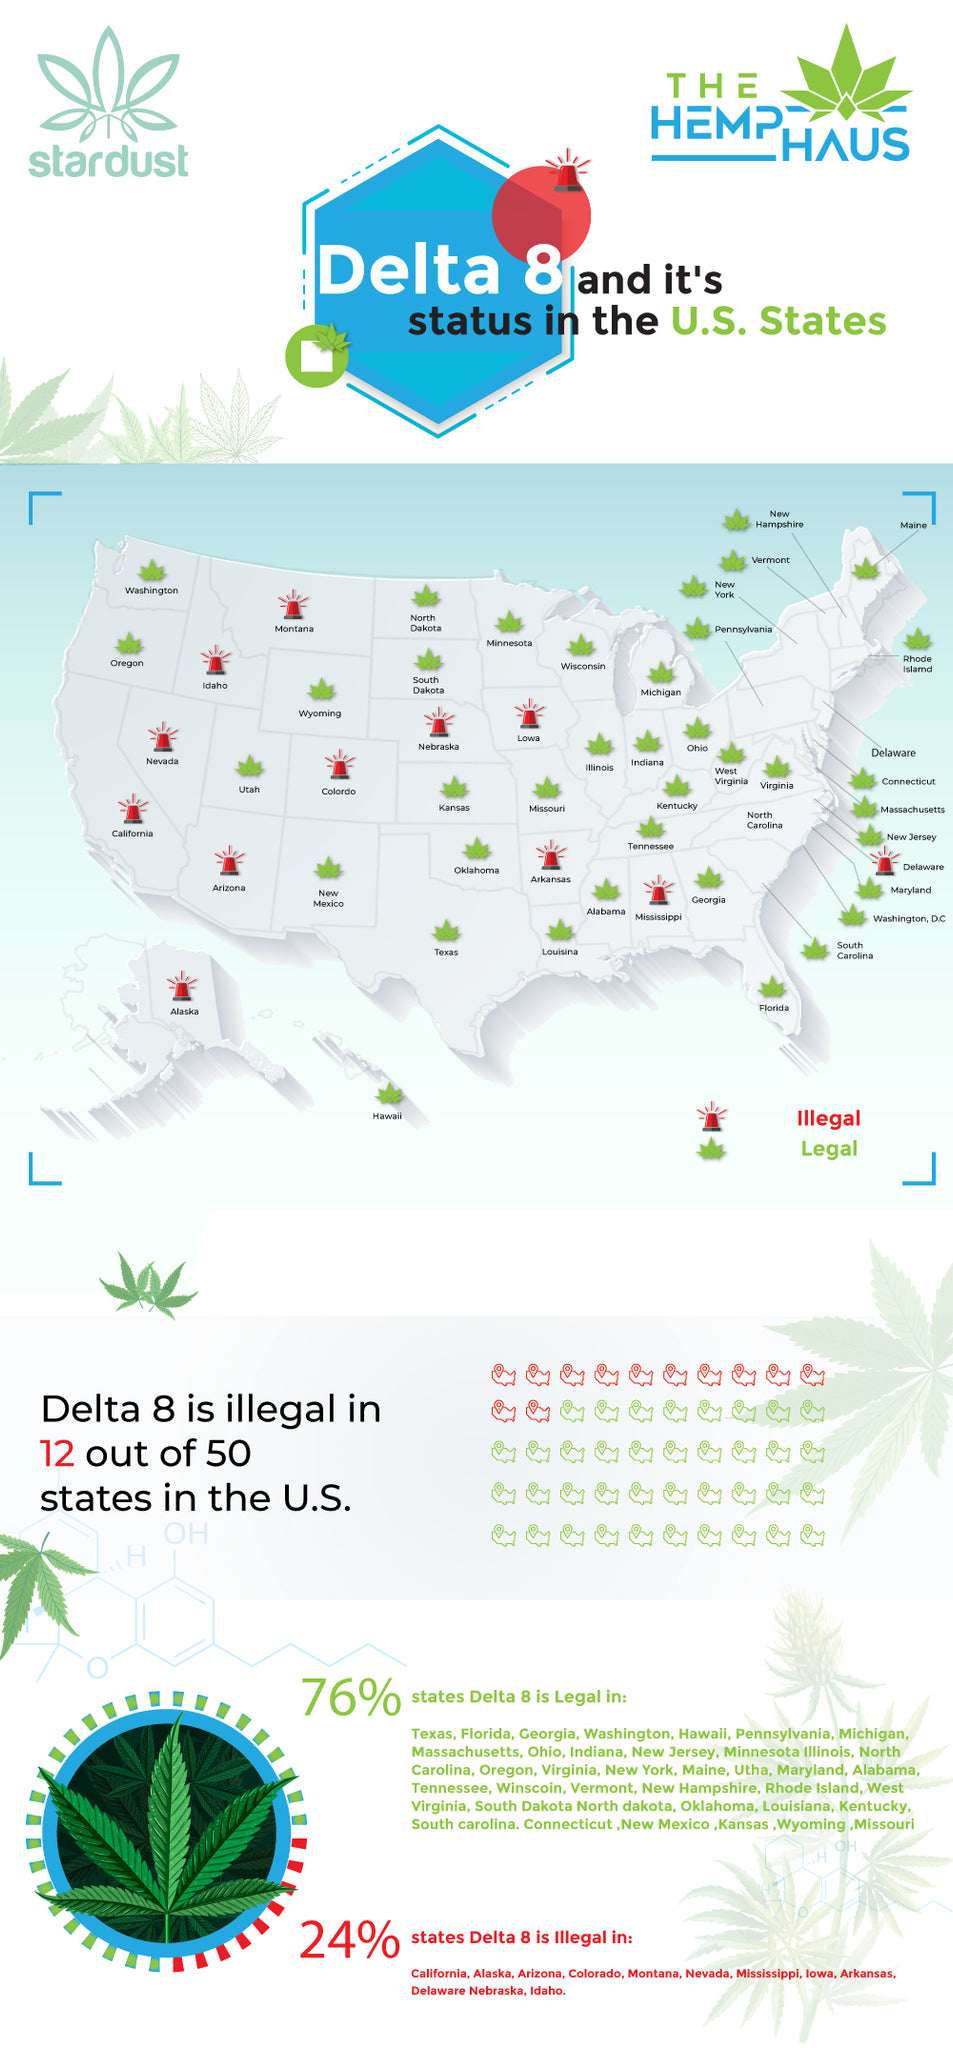 Infographic-Legal-status-of-Delta-8-THC-near-me-and-Available-at-The-Hemp-Haus-CBD-Store-and-Delta-8-Store.jpg